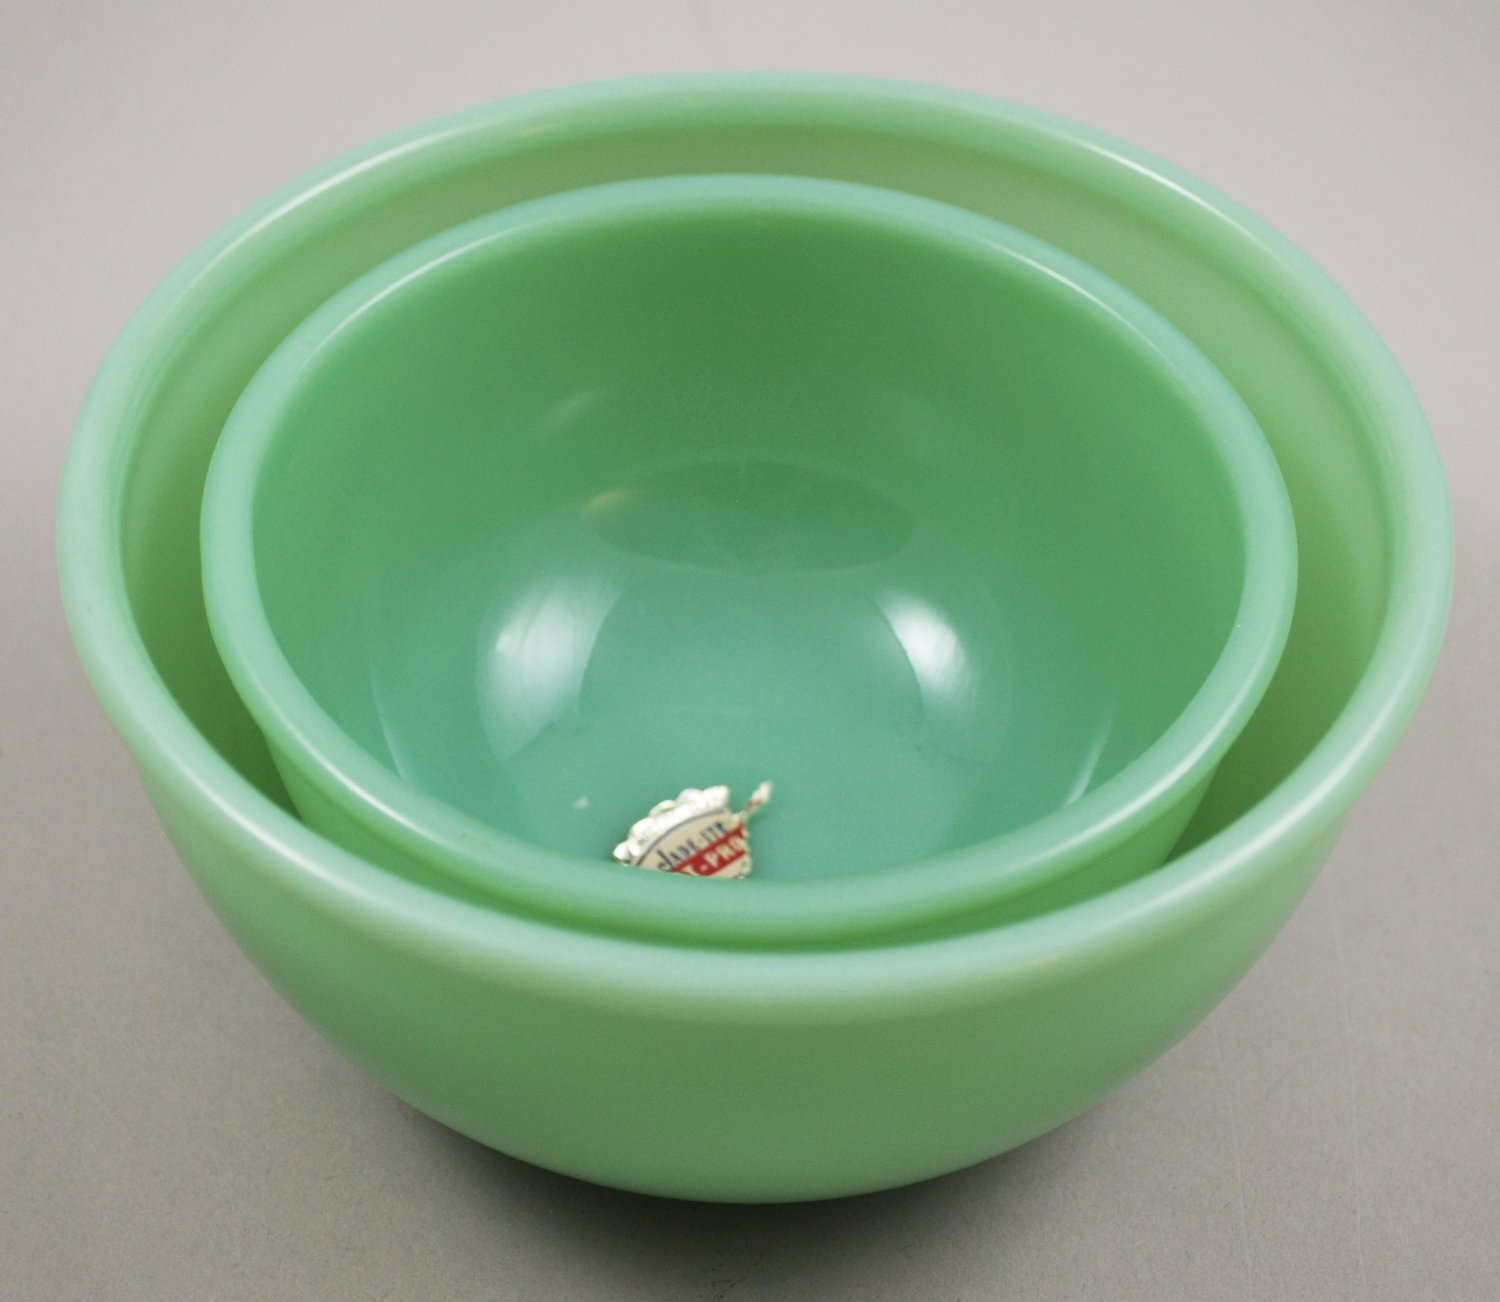 Anchor Hocking Fire-King Jade-ite Beaded Edge Vintage Mixing Bowls Set of 2